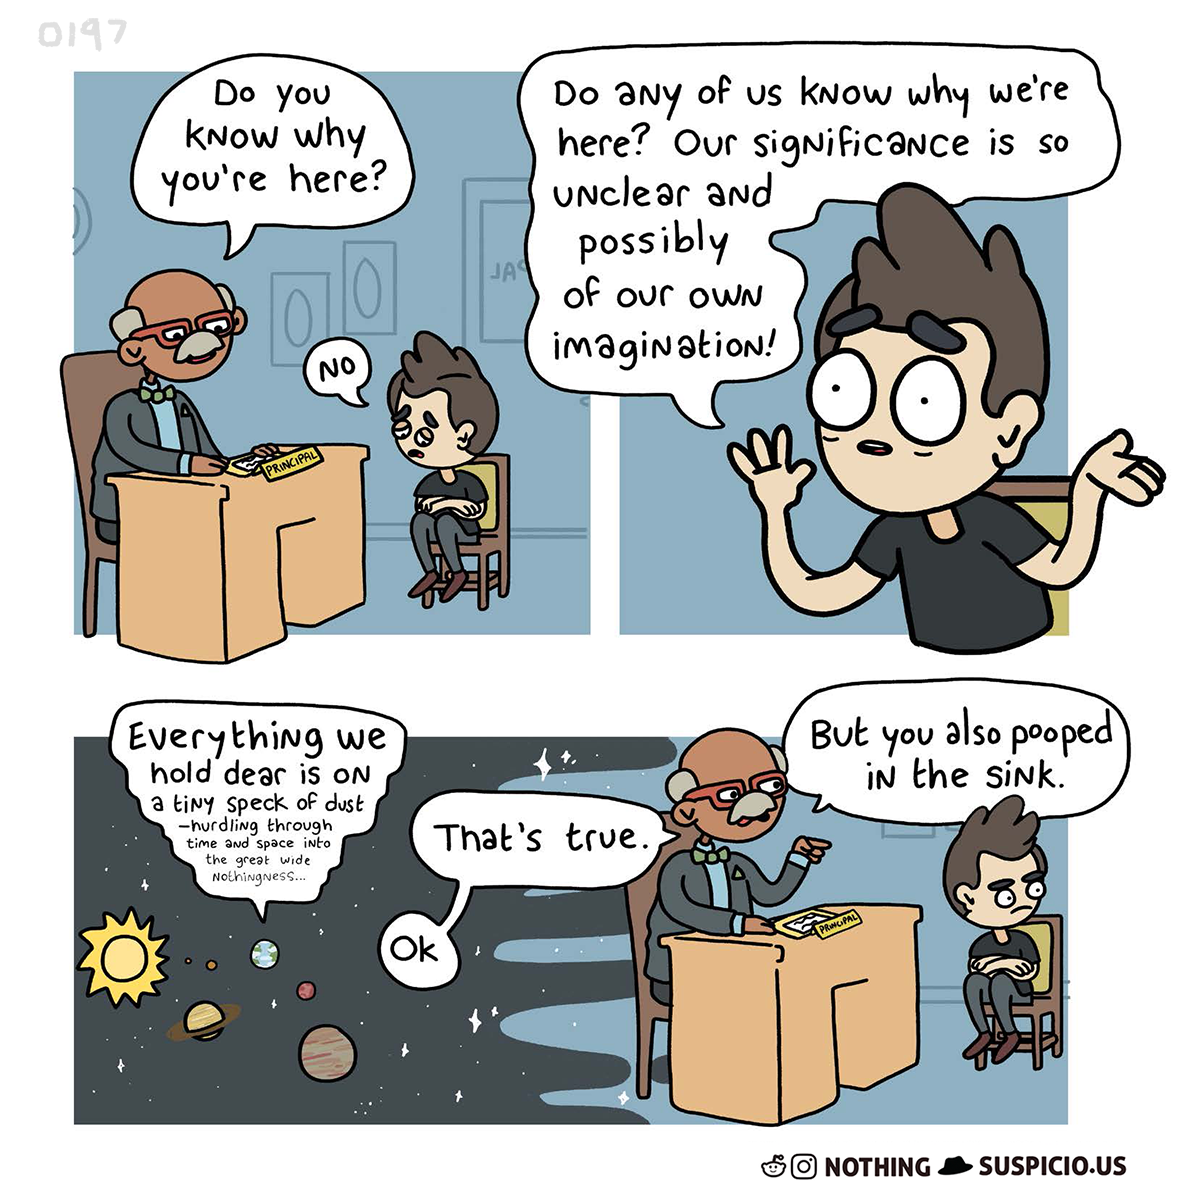 0197-WhyYoureHere.png